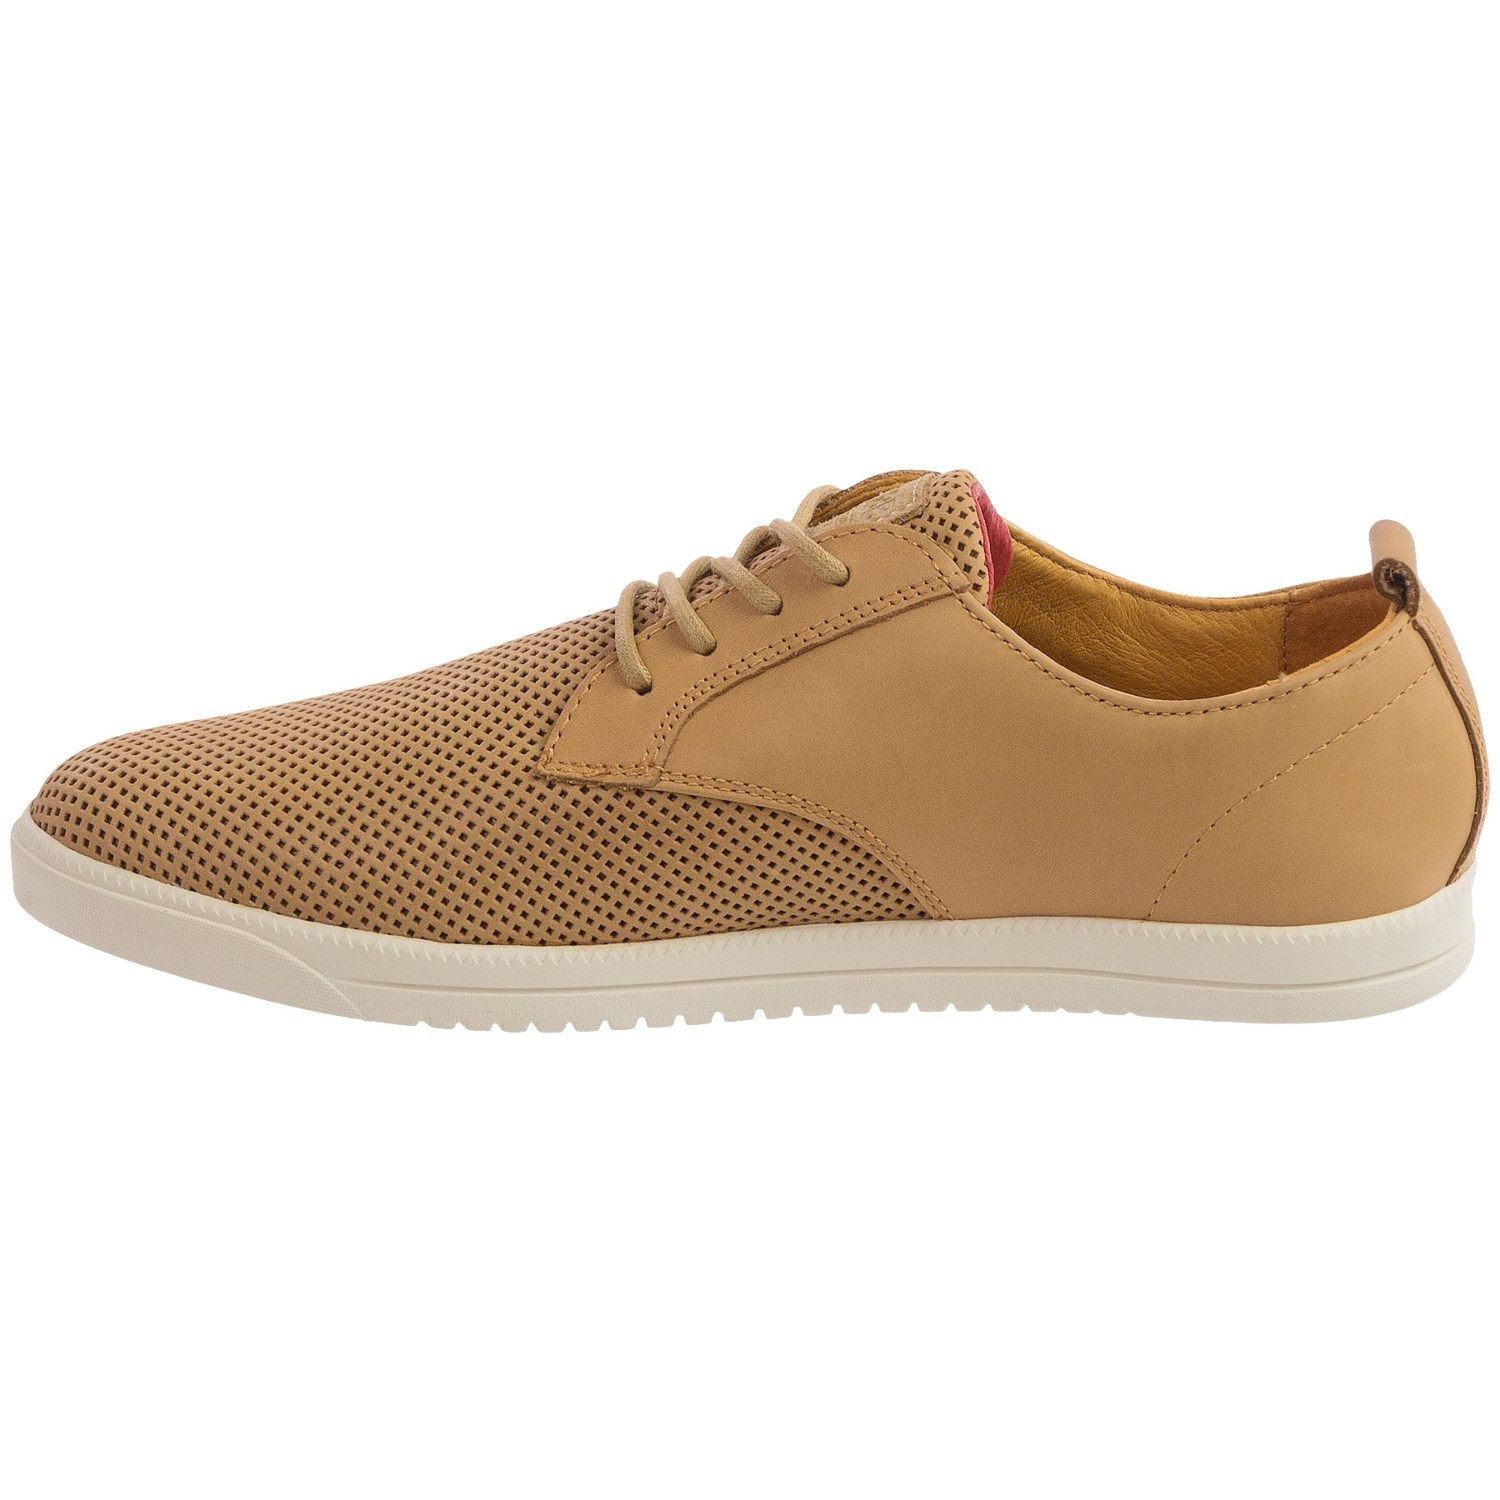 Clae Shoes Review